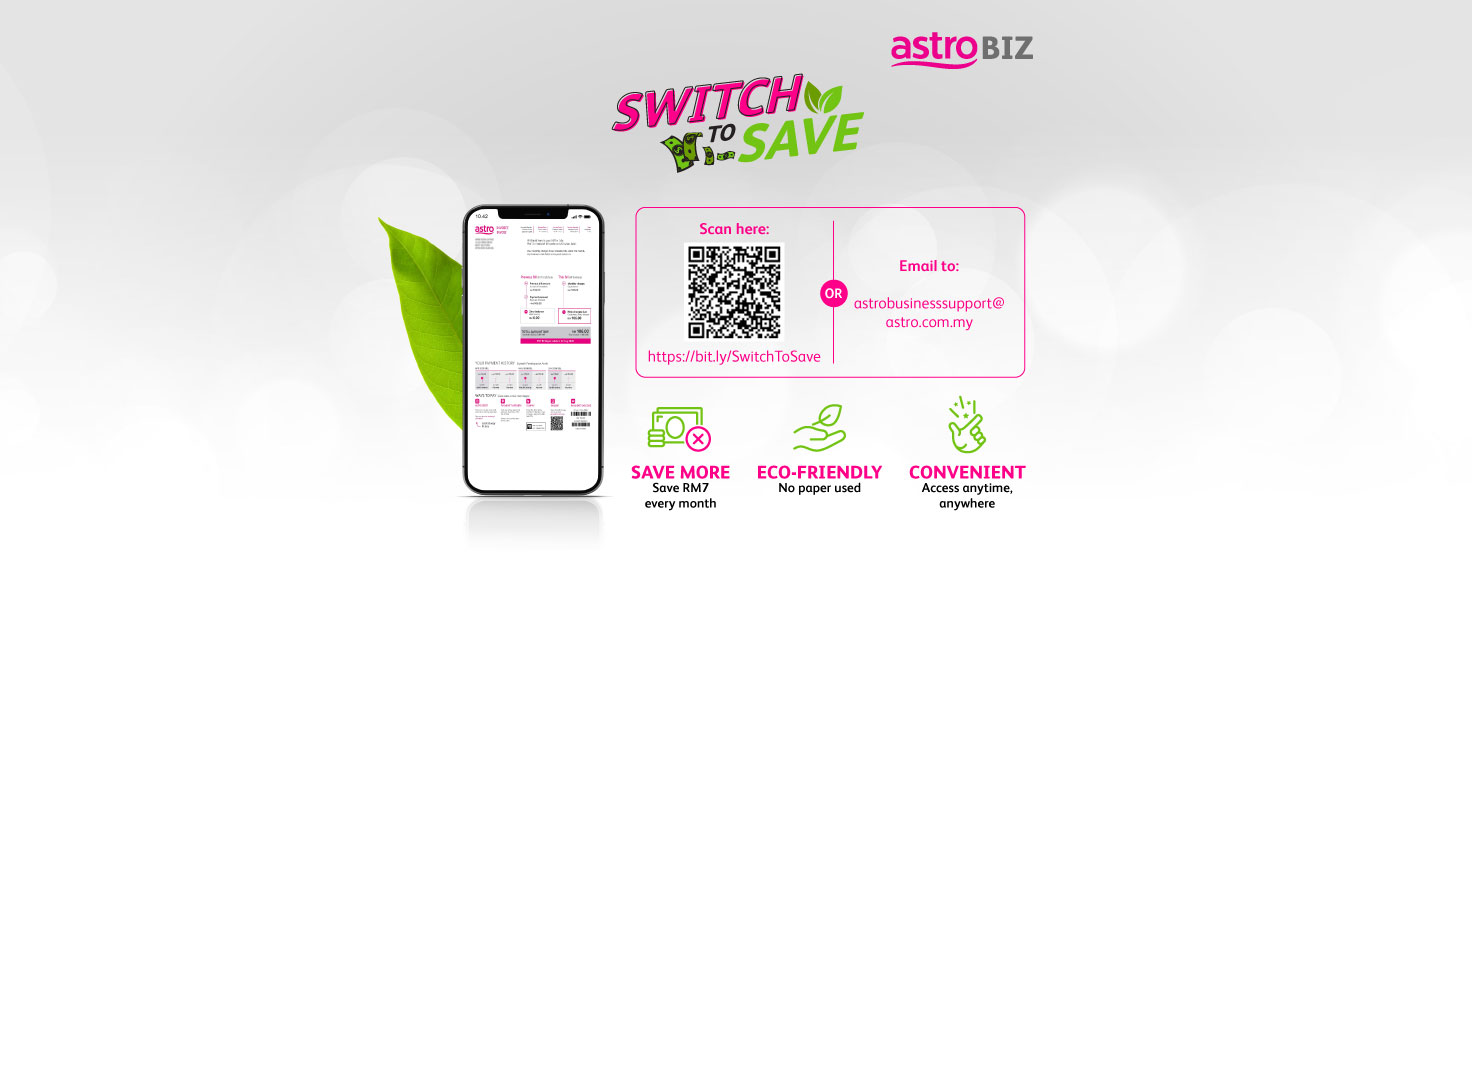 Switch to save RM7 monthly